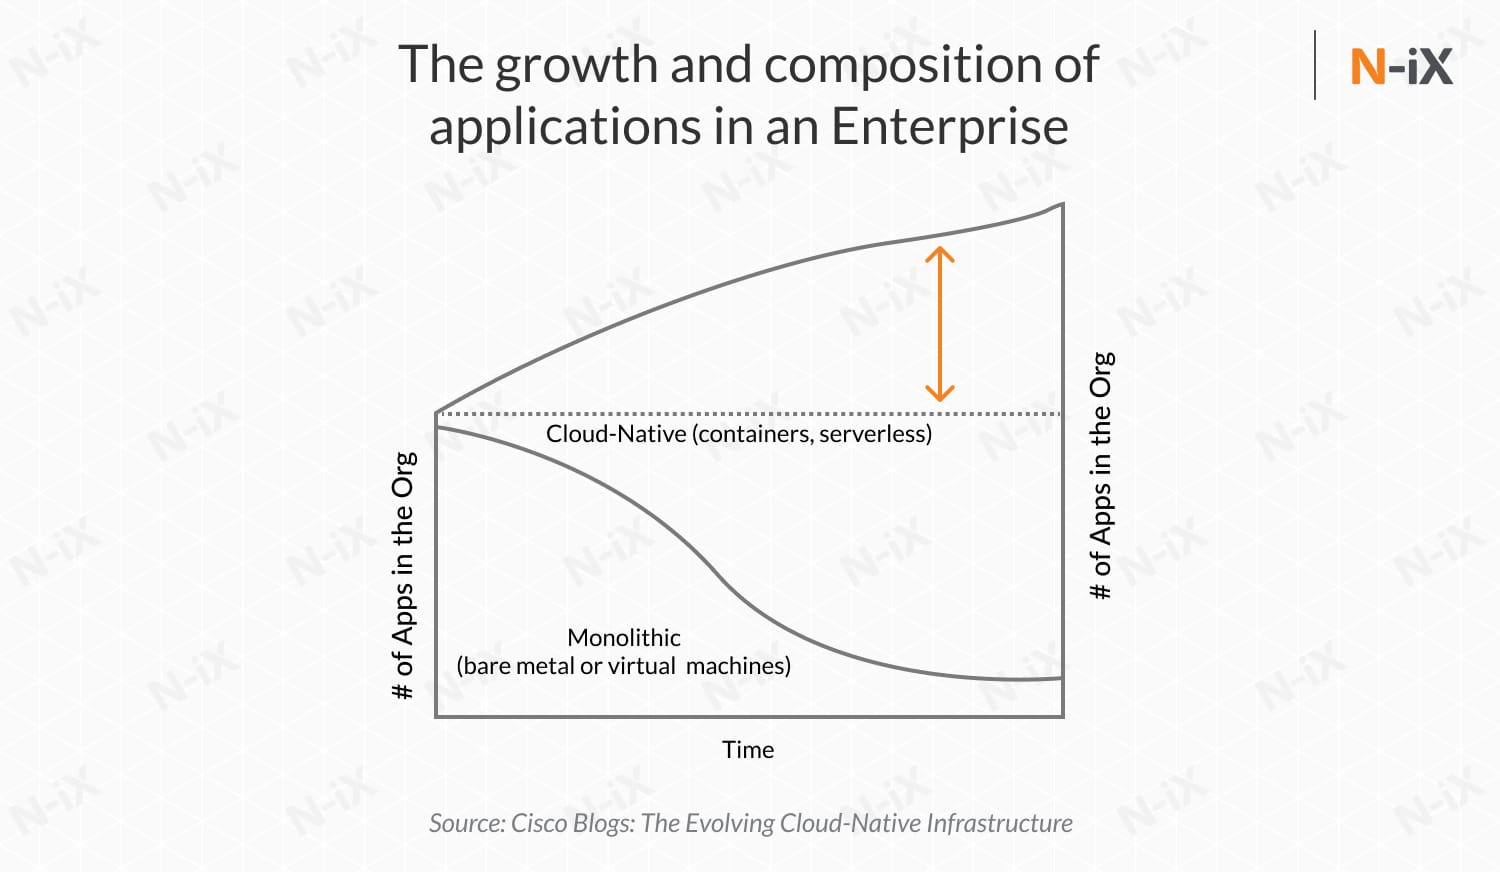 The growth and composition of applications in an Enterprise